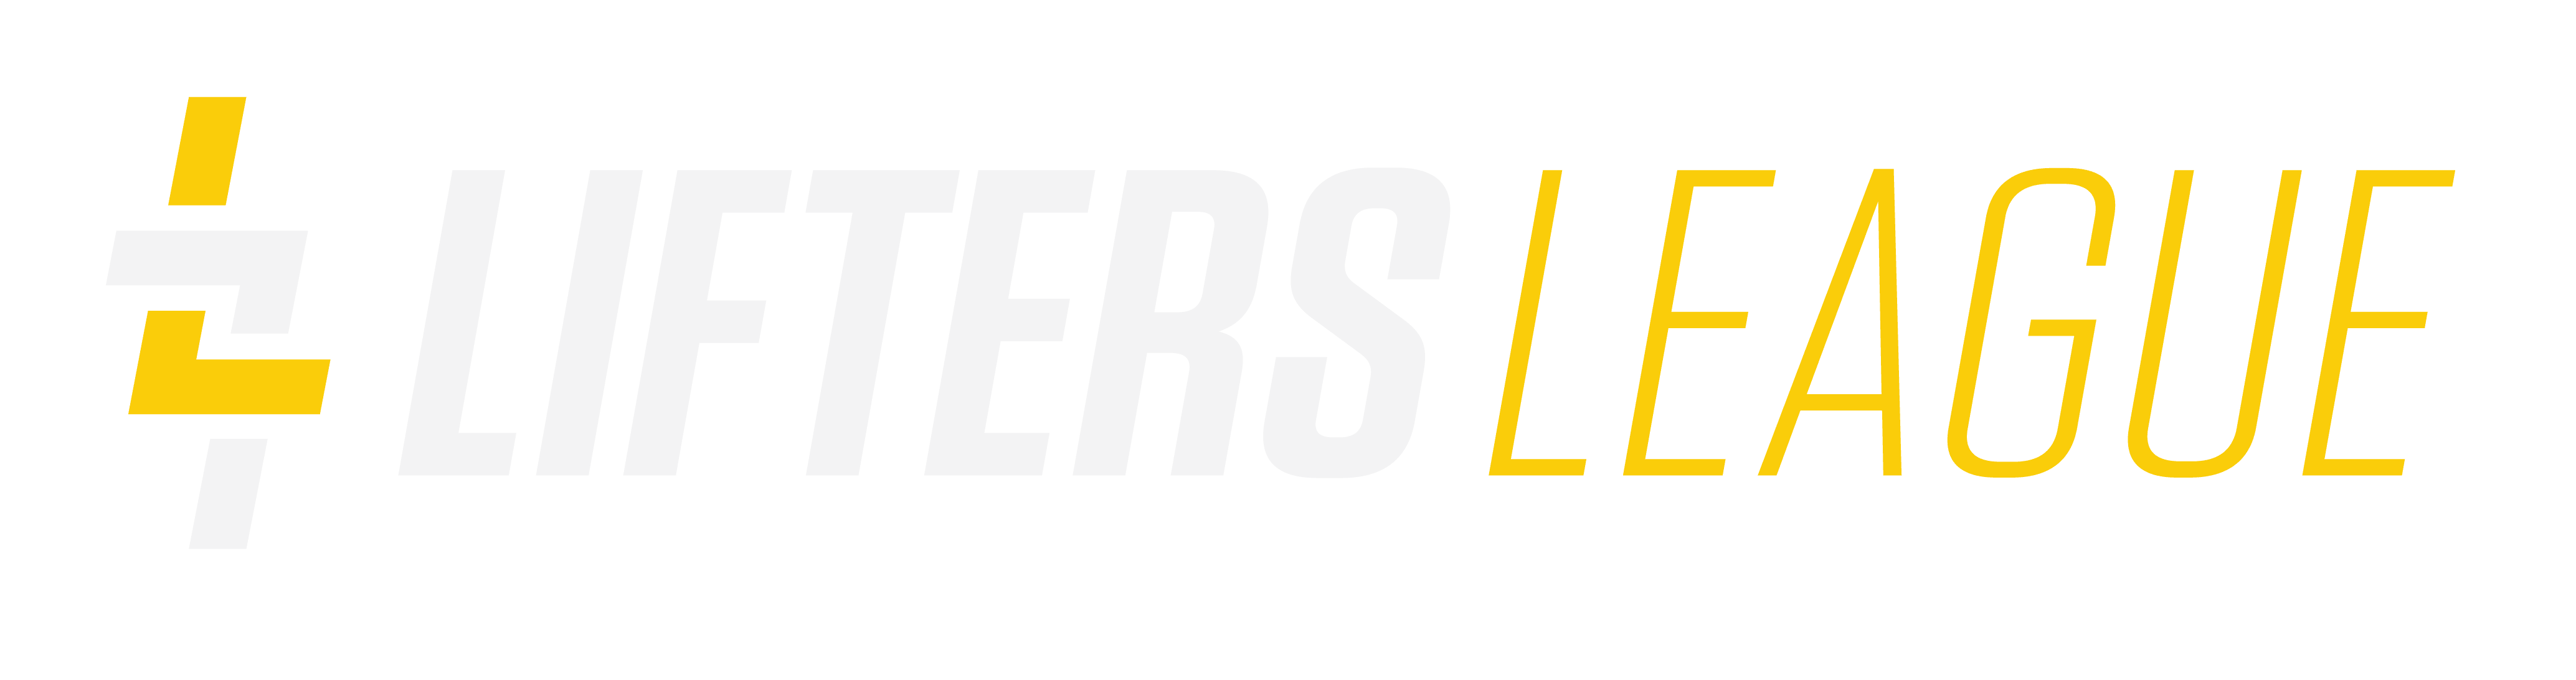 Lifters League Logo Rev